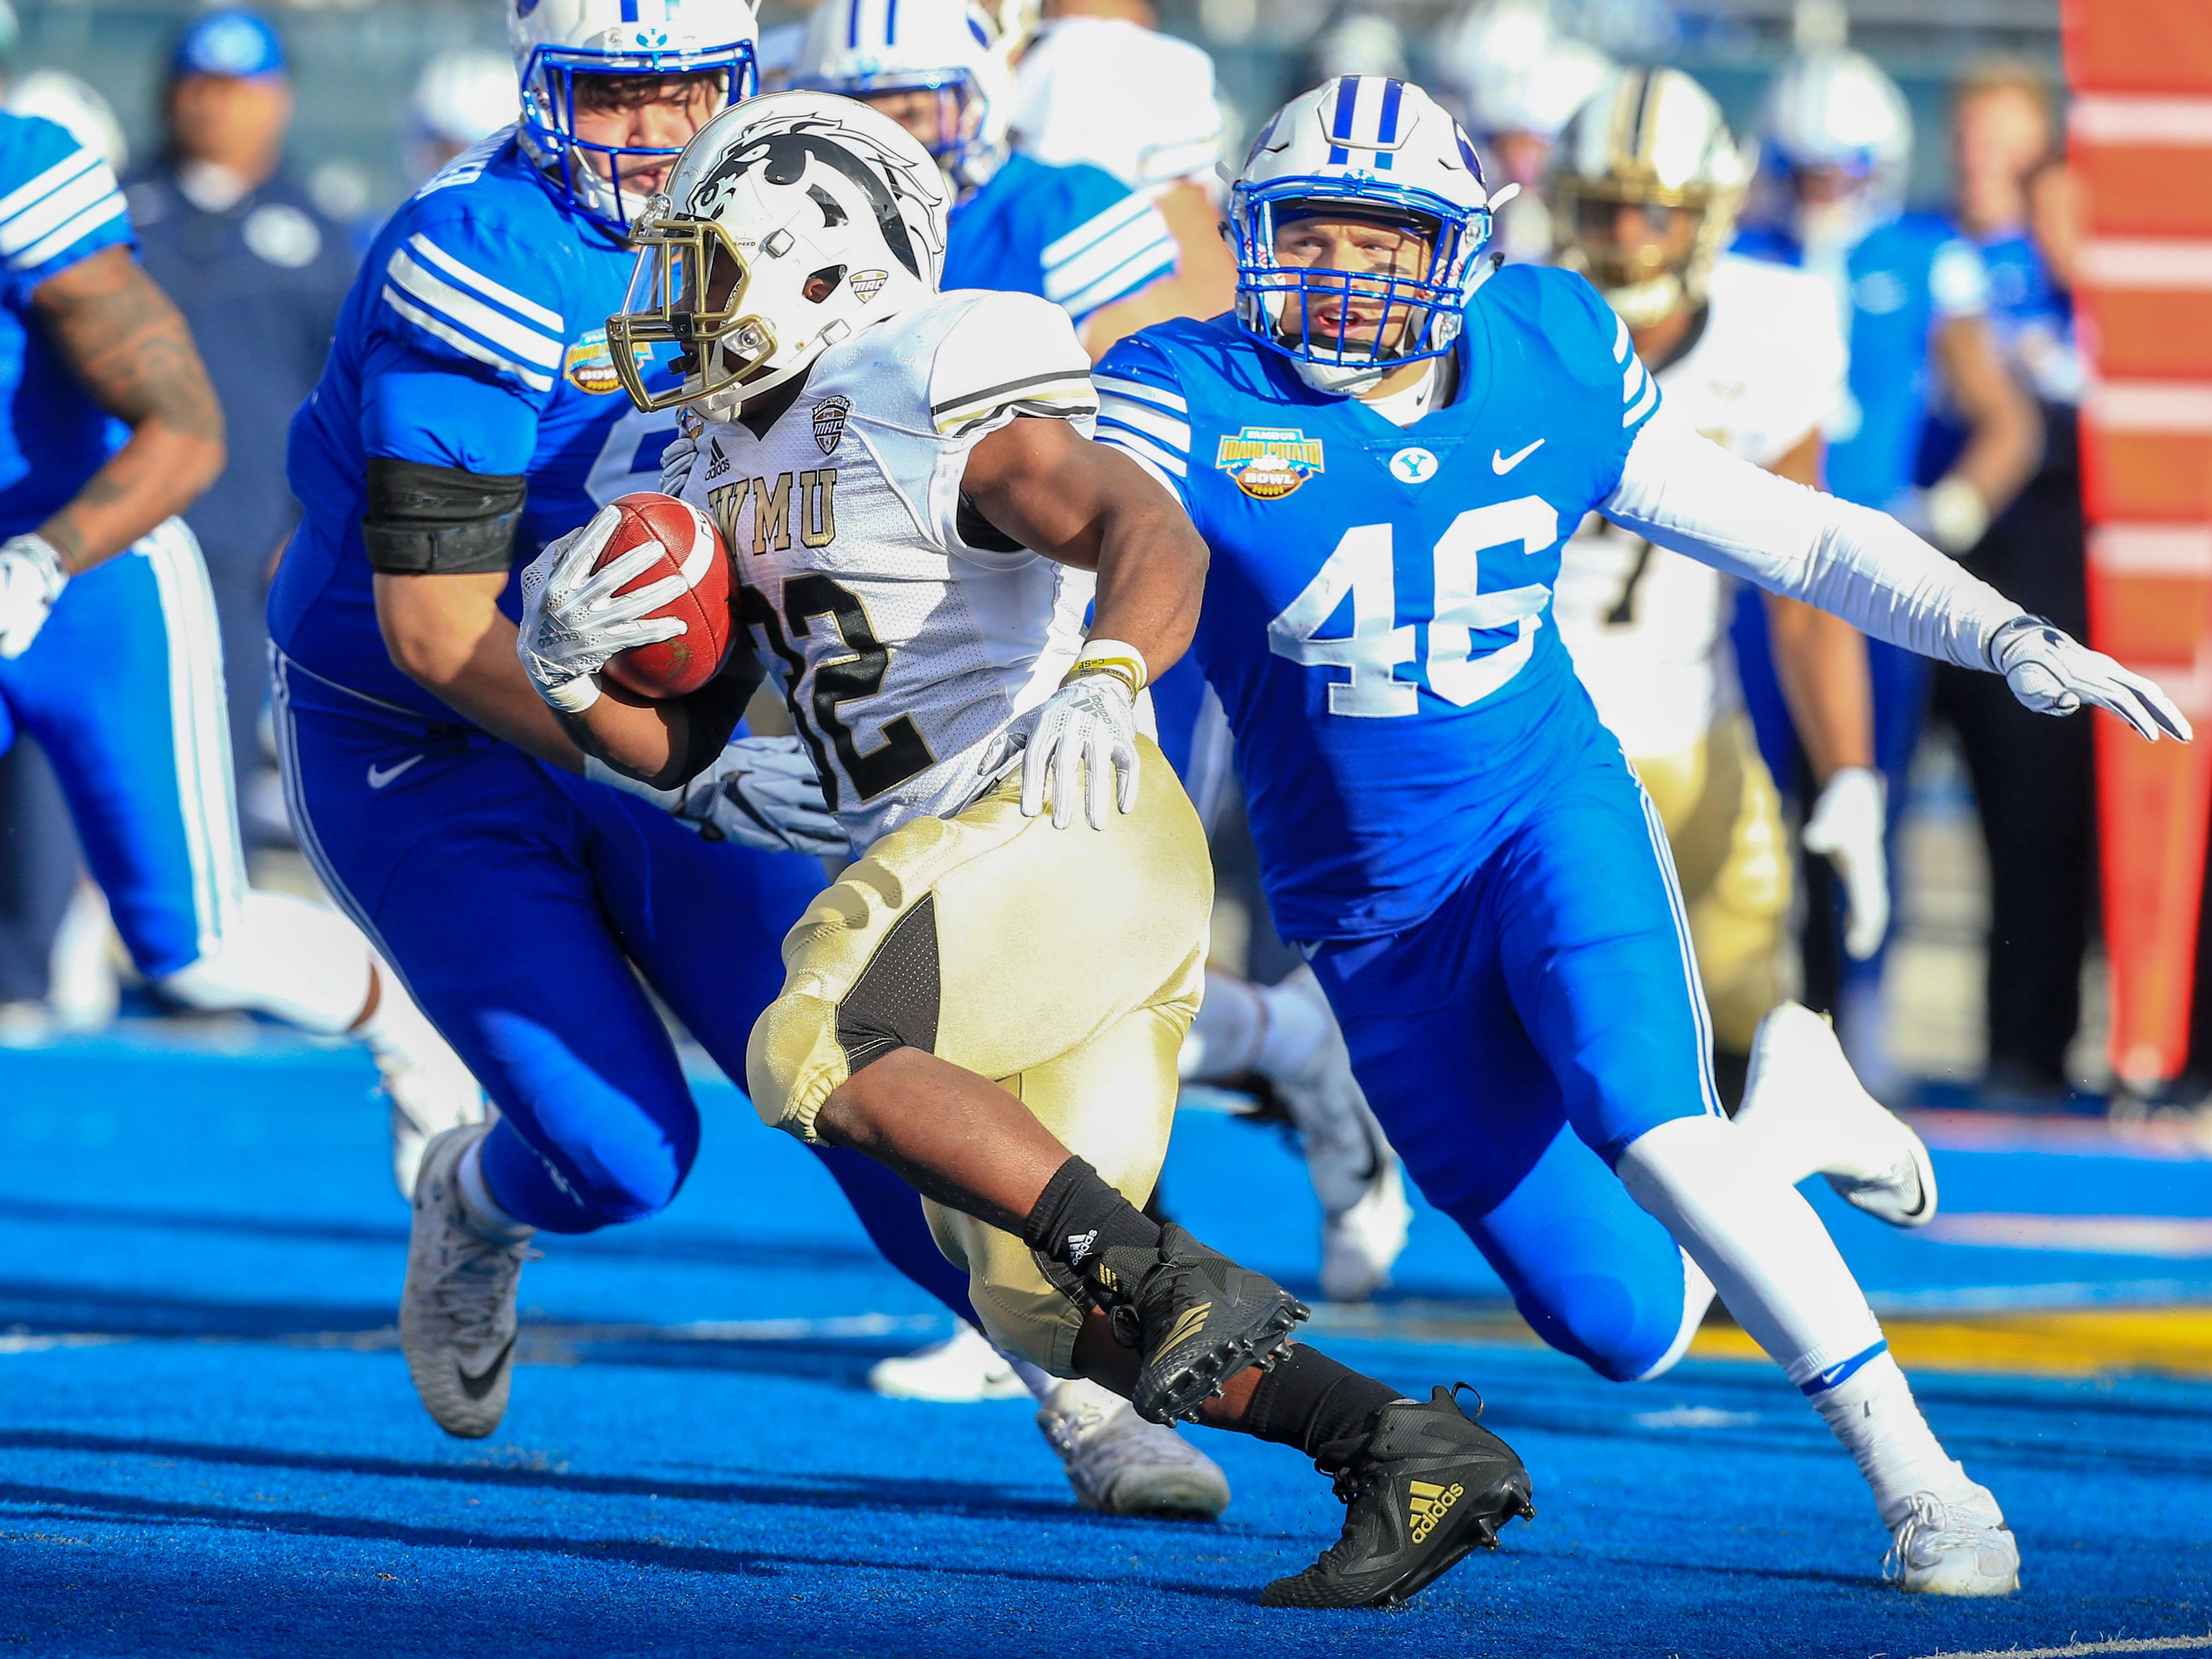 Dec 21, 2018; Boise, ID, United States; Brigham Young Cougars linebacker Rhett Sandlin (46) chases after Western Michigan Broncos running back Jamauri Bogan (32) during the first half  of play in the 2018 Potato Bowl at Albertsons Stadium.